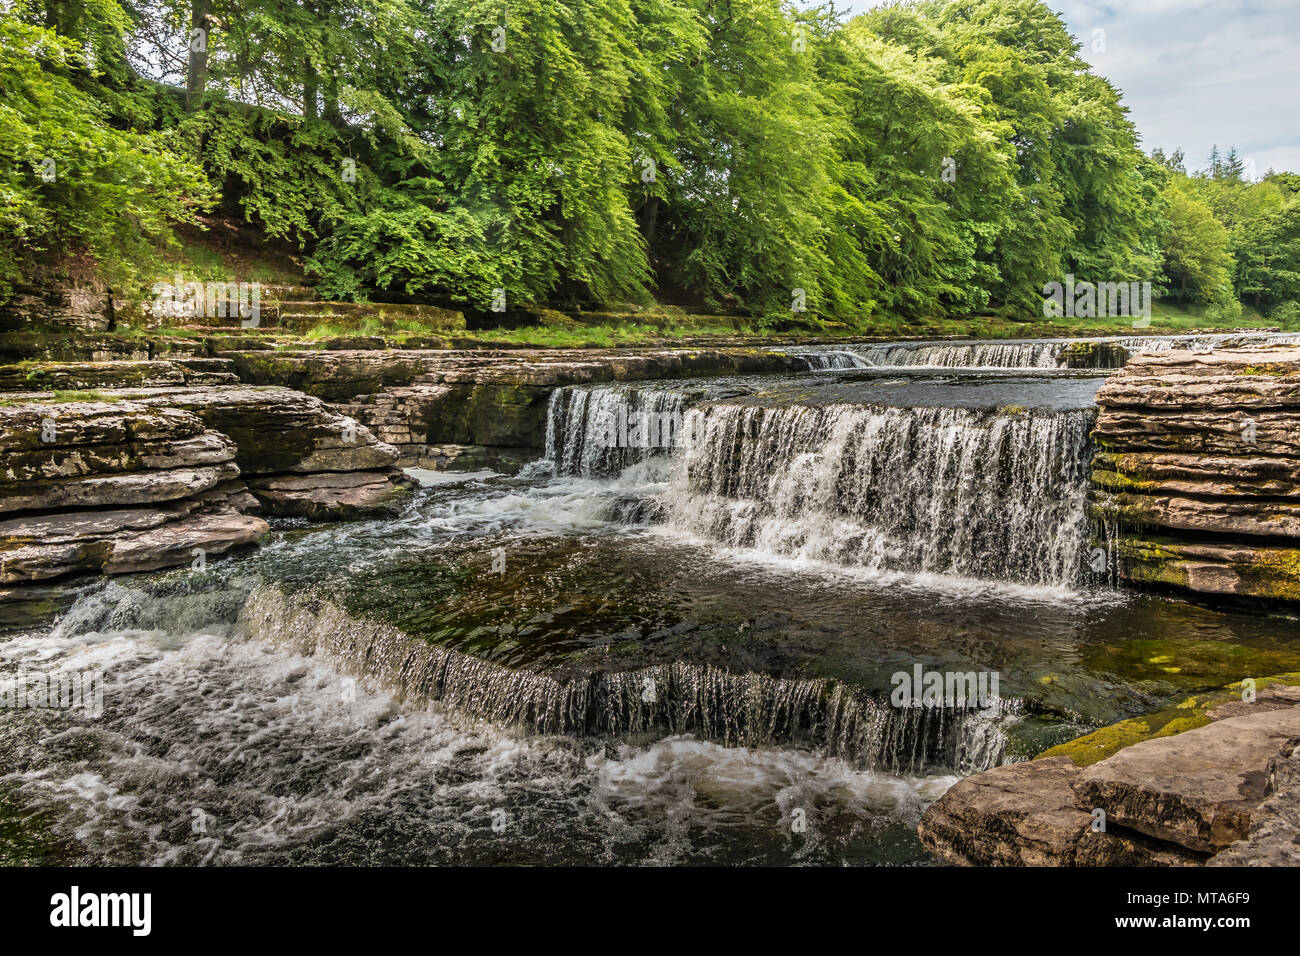 Lower Falls, Aysgarth, Wensleydale, Yorkshire Dales National Park, UK in late spring with very low water level Stock Photo